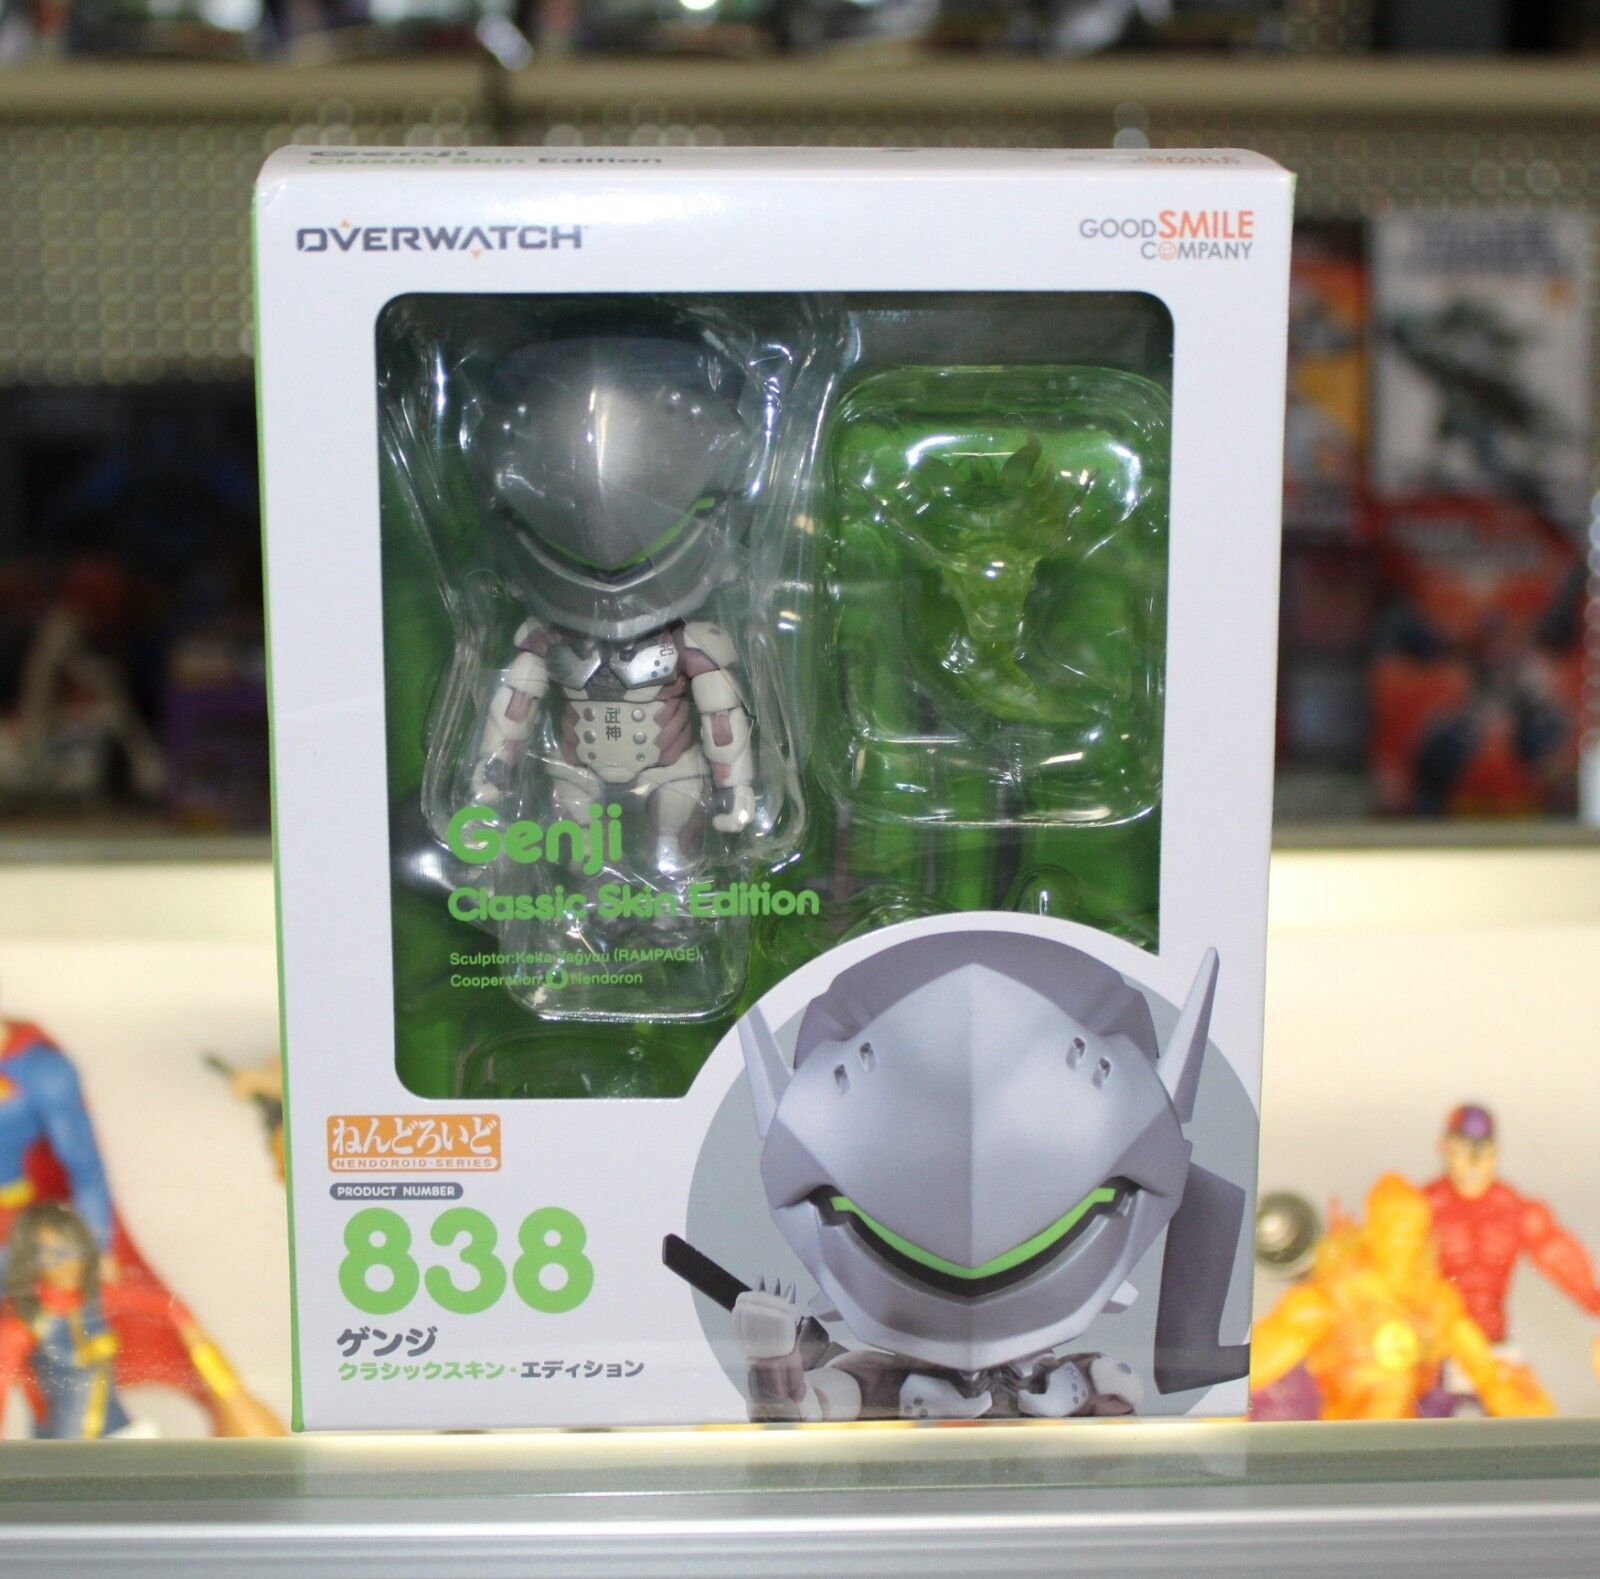 Good Smile Company NendGoldid Overwatch Genji Classic Skin Edition 838 Authentic